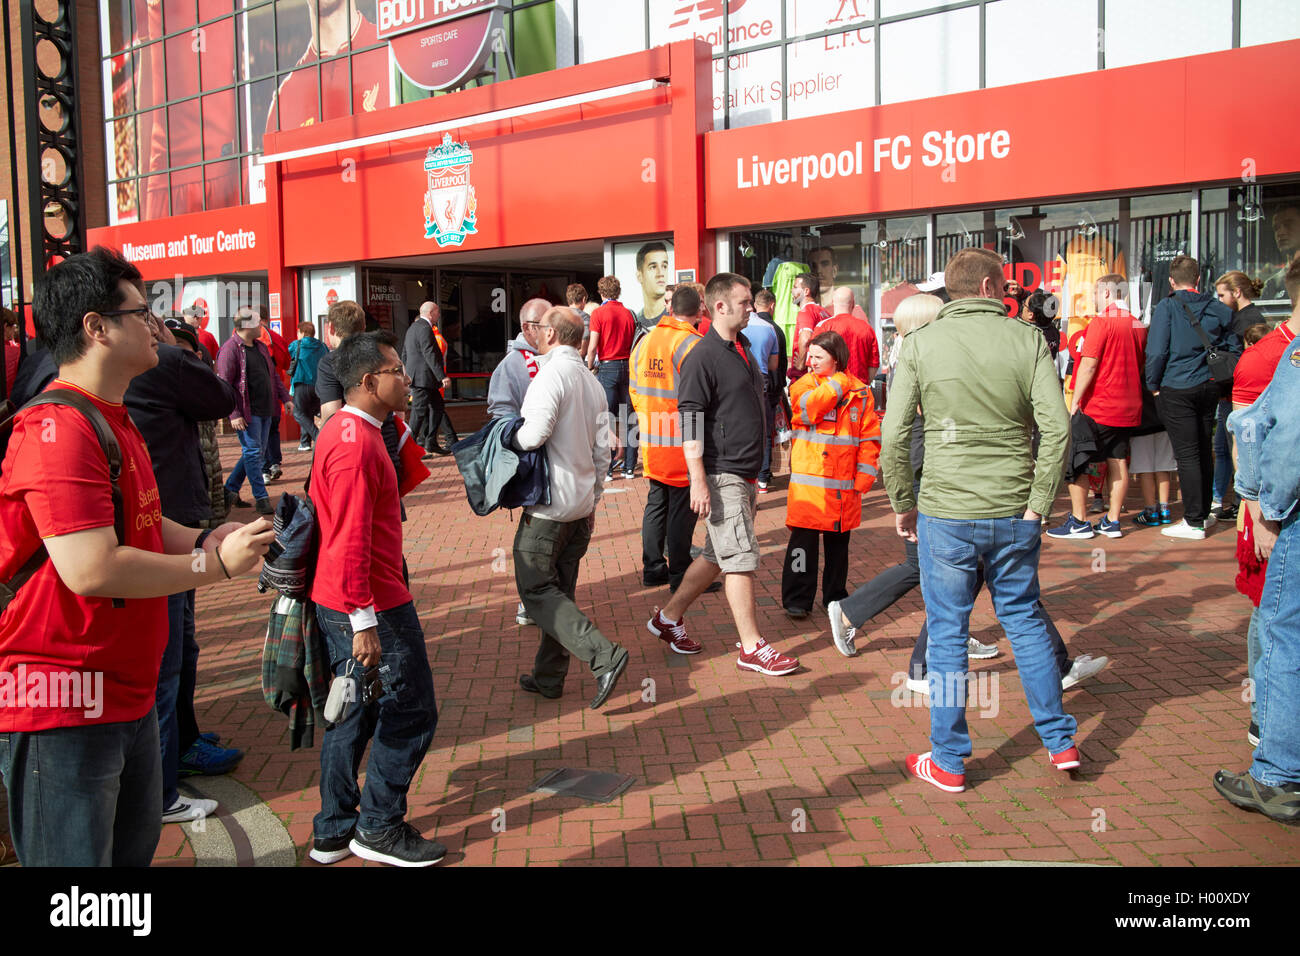 museum and official store entrance Liverpool FC anfield stadium Liverpool Merseyside UK - Stock Image